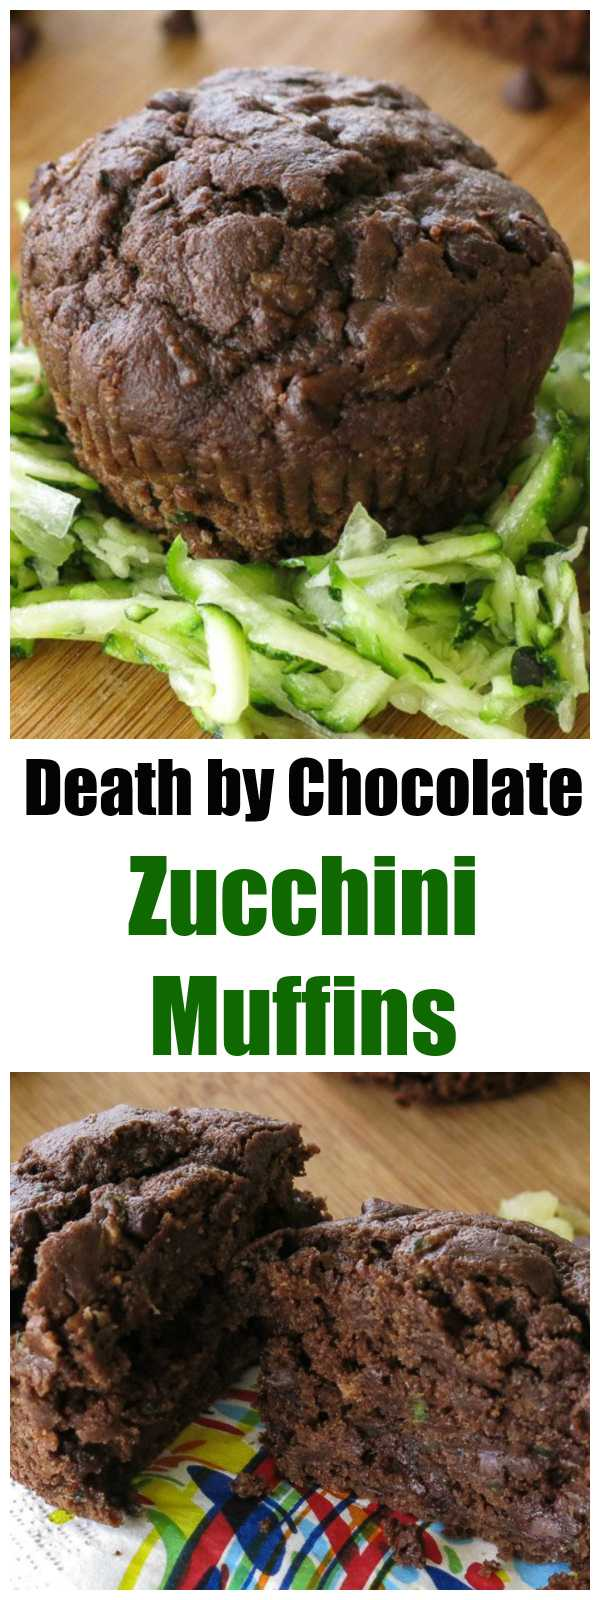 These are THE BEST Death by Chocolate Zucchini Muffins! Healthy, moist, vegan and sooo tasty. We make them all the time!